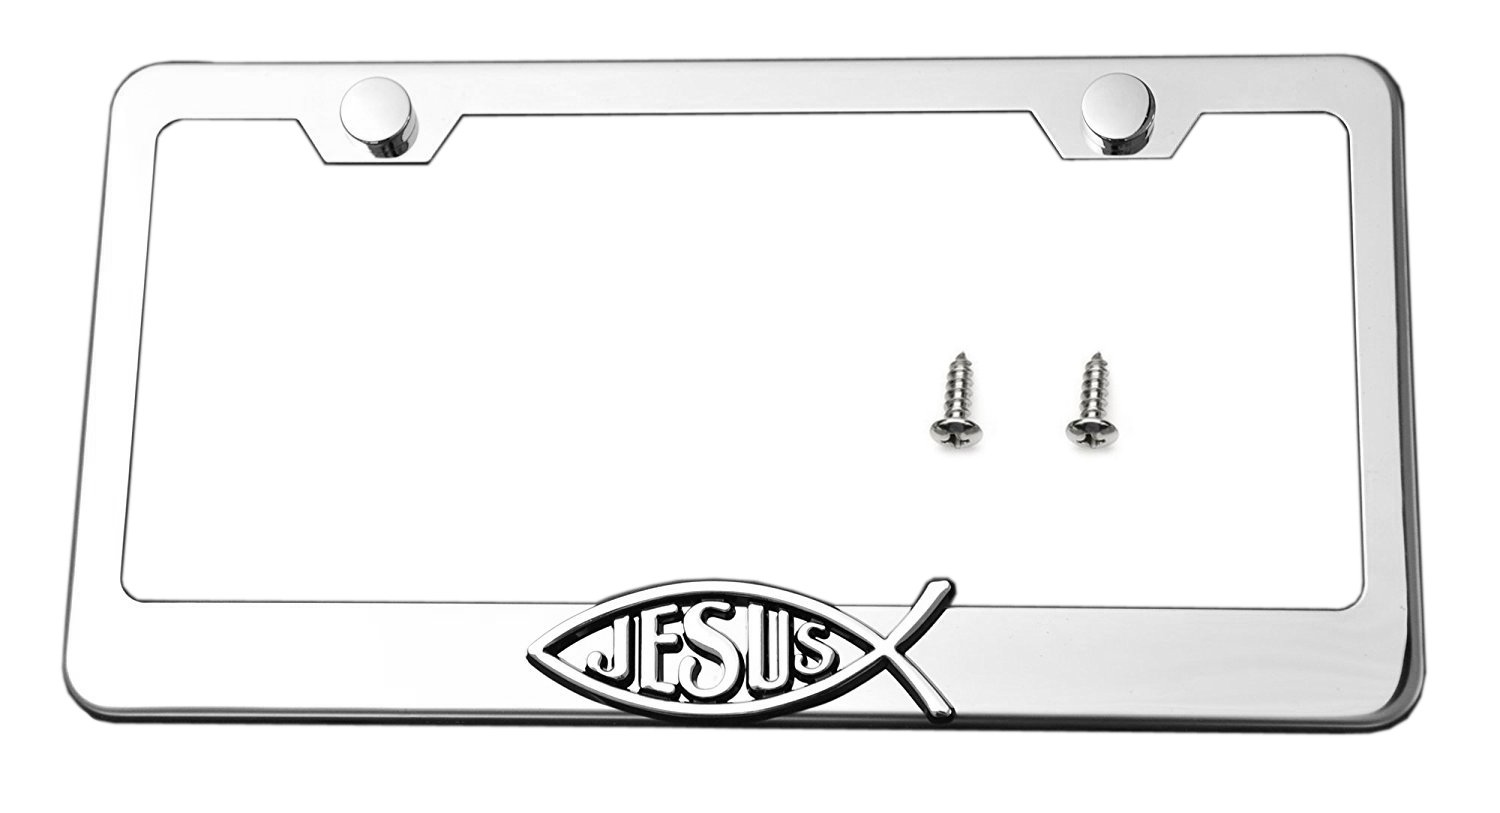 License plate frame Jesus Fish Spiritual Love 3D Emblem Stainless Steel Chrome, New